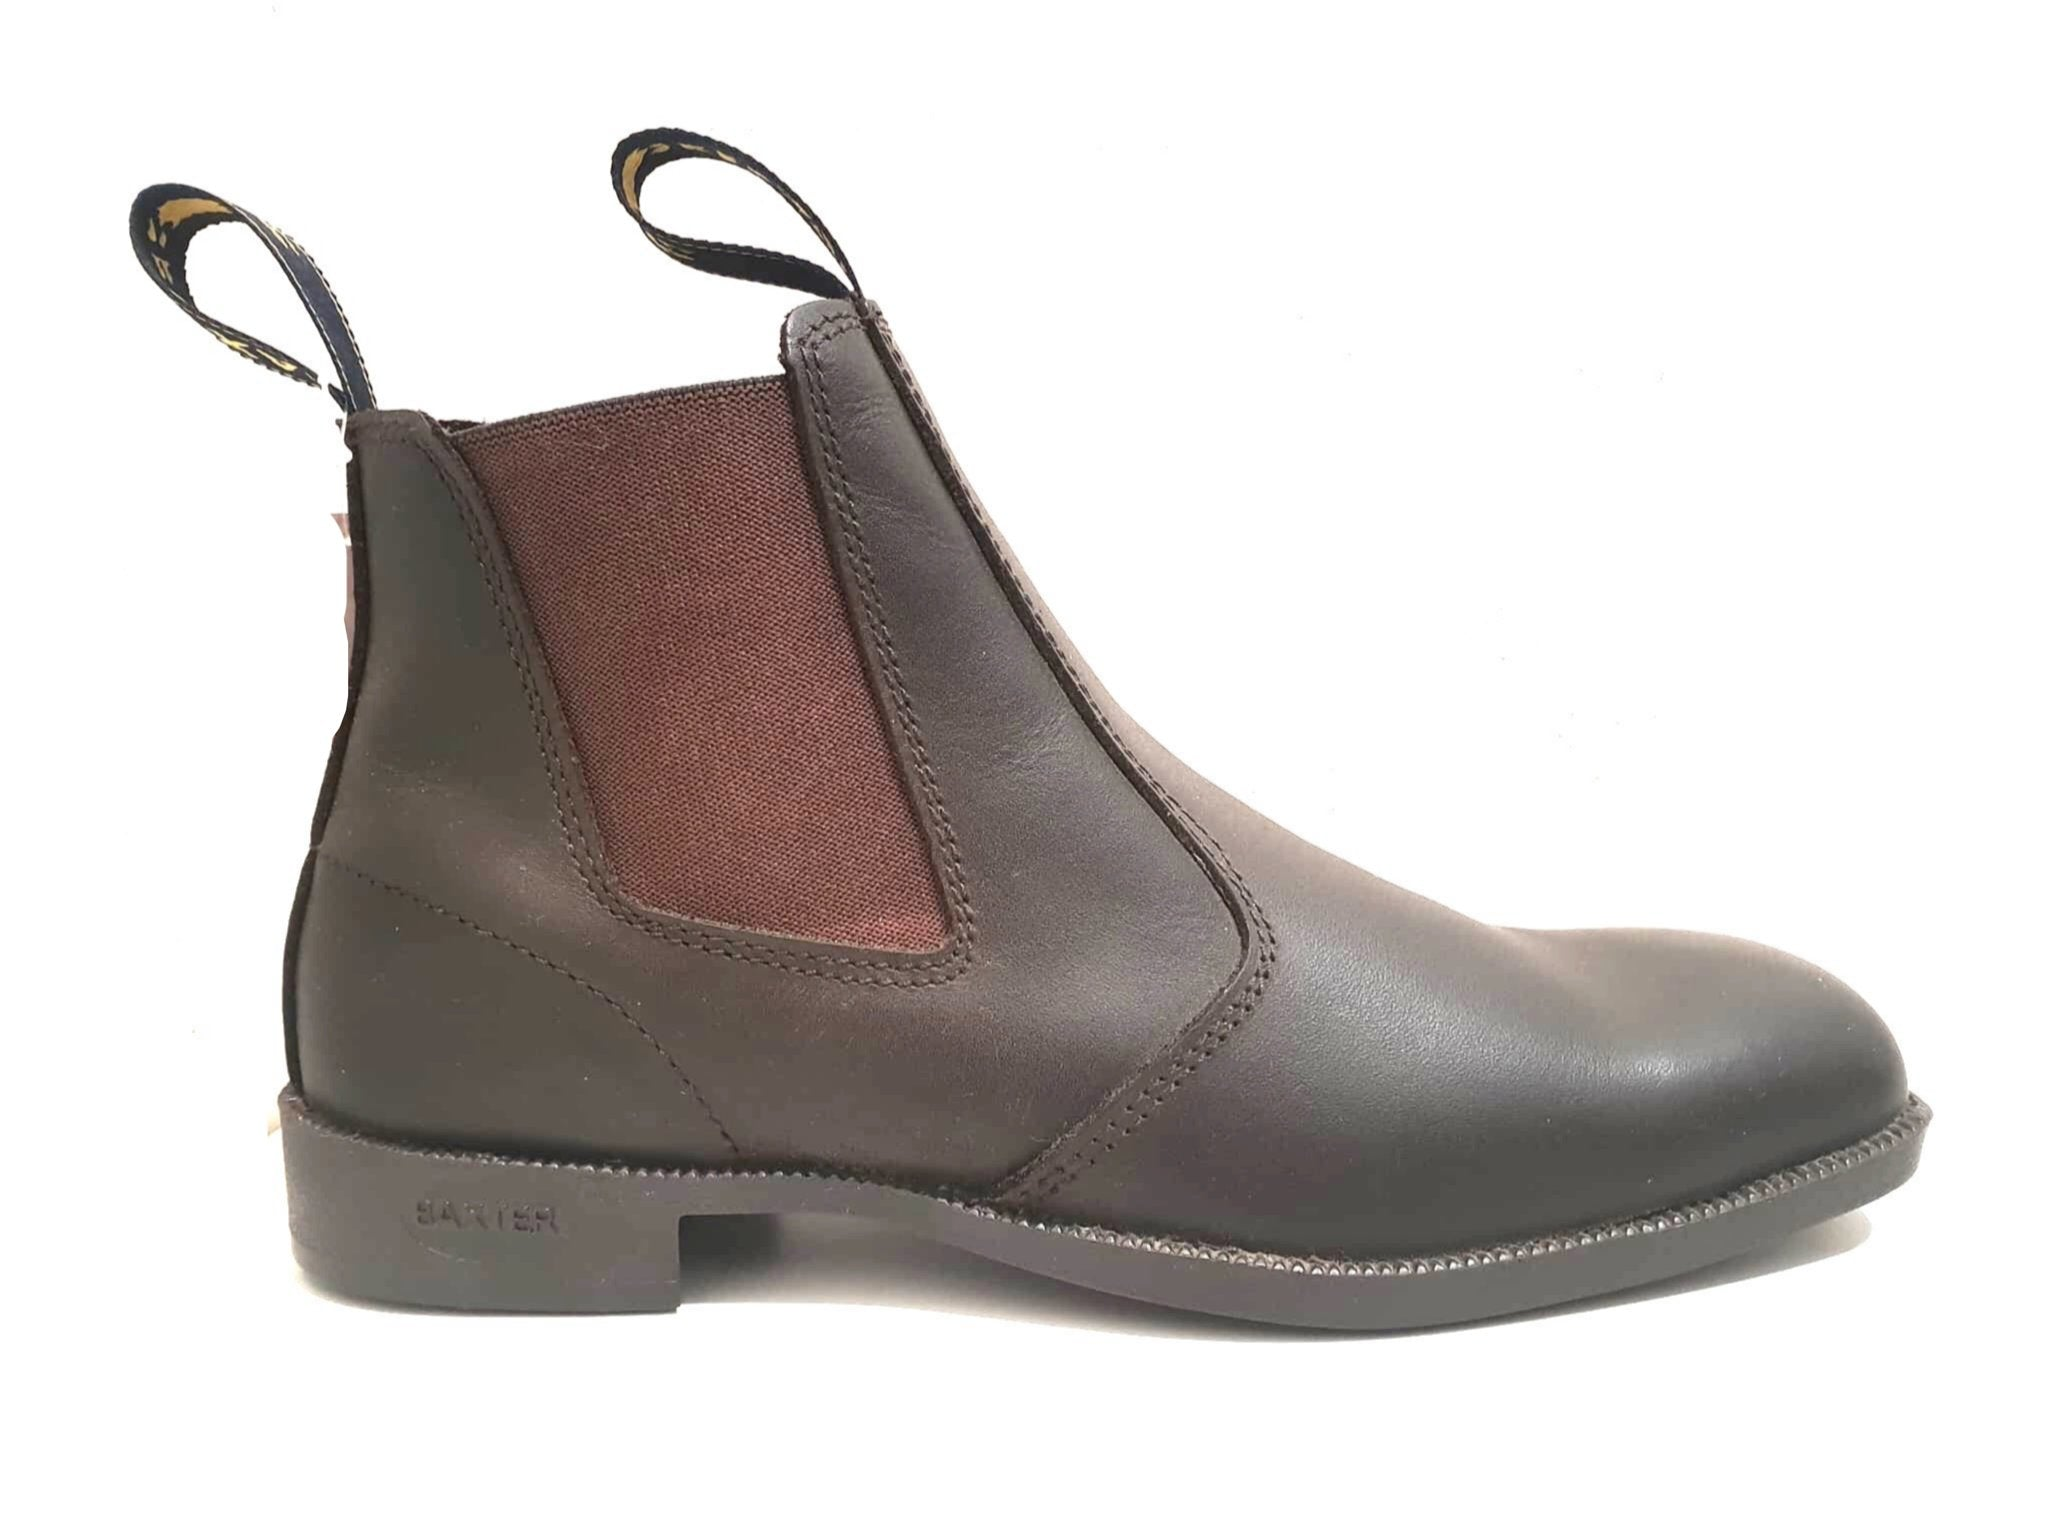 Baxter B Boot Claret Brown Elastic Sided Boot